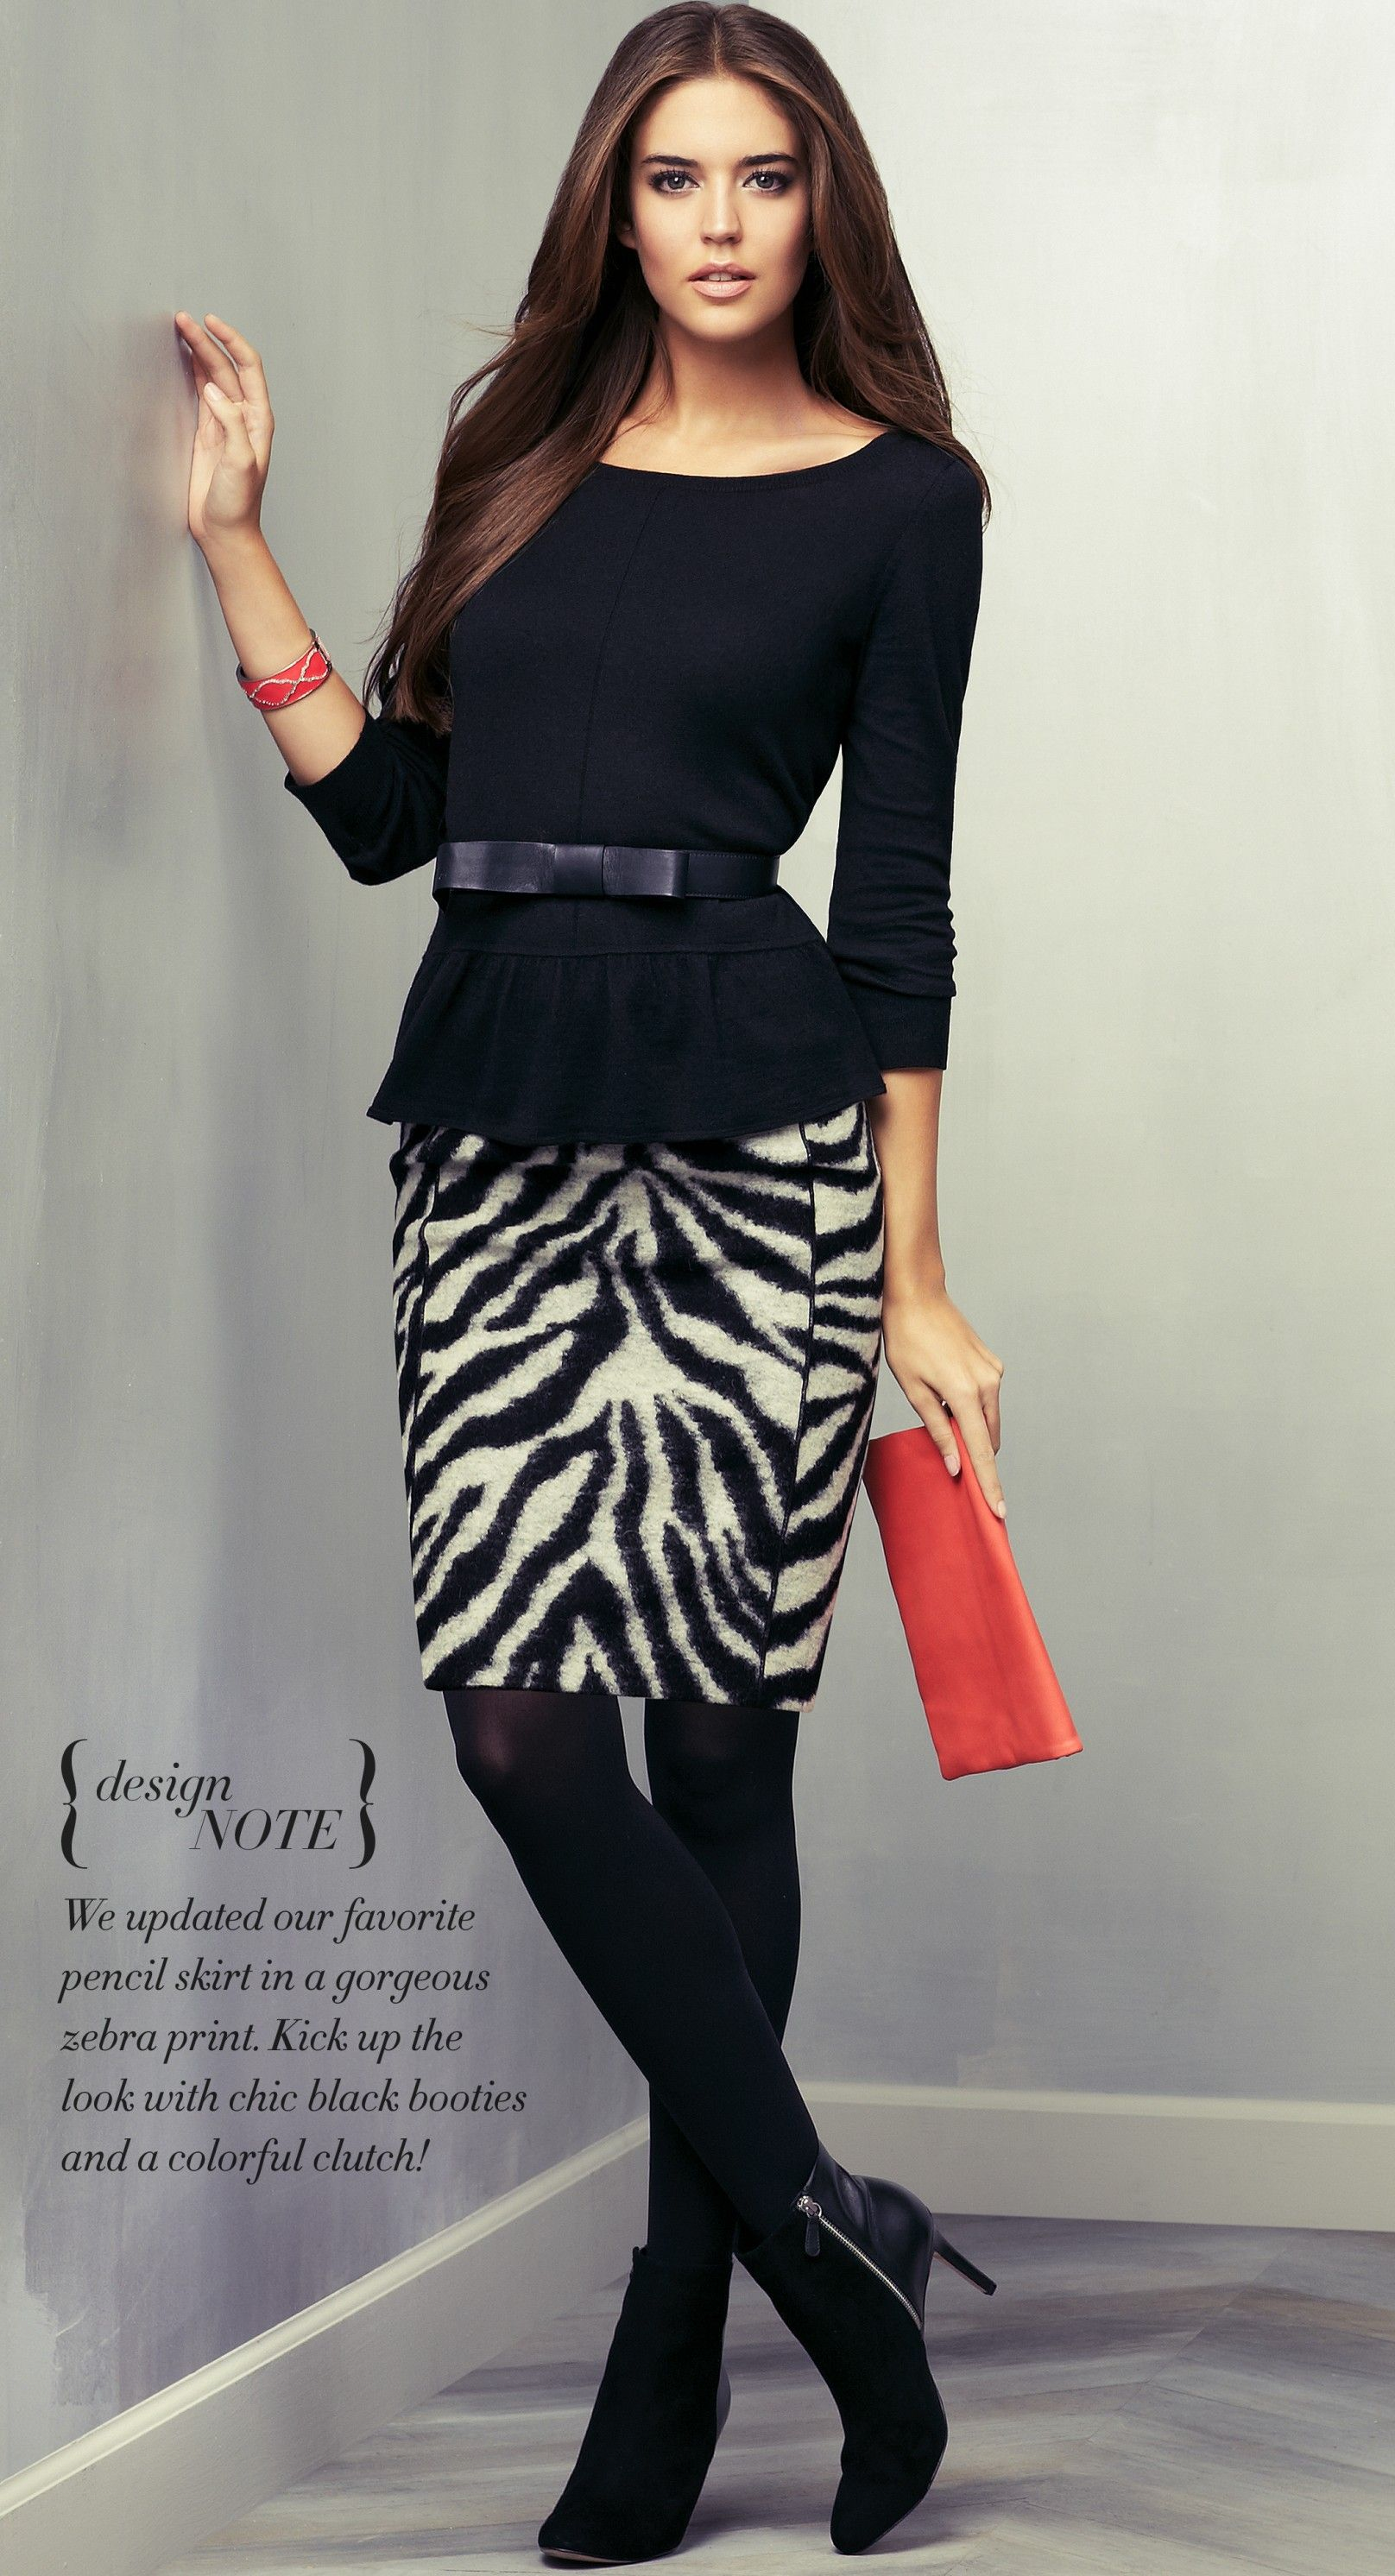 clara alonso for ann taylor november 2012 lookbook fab